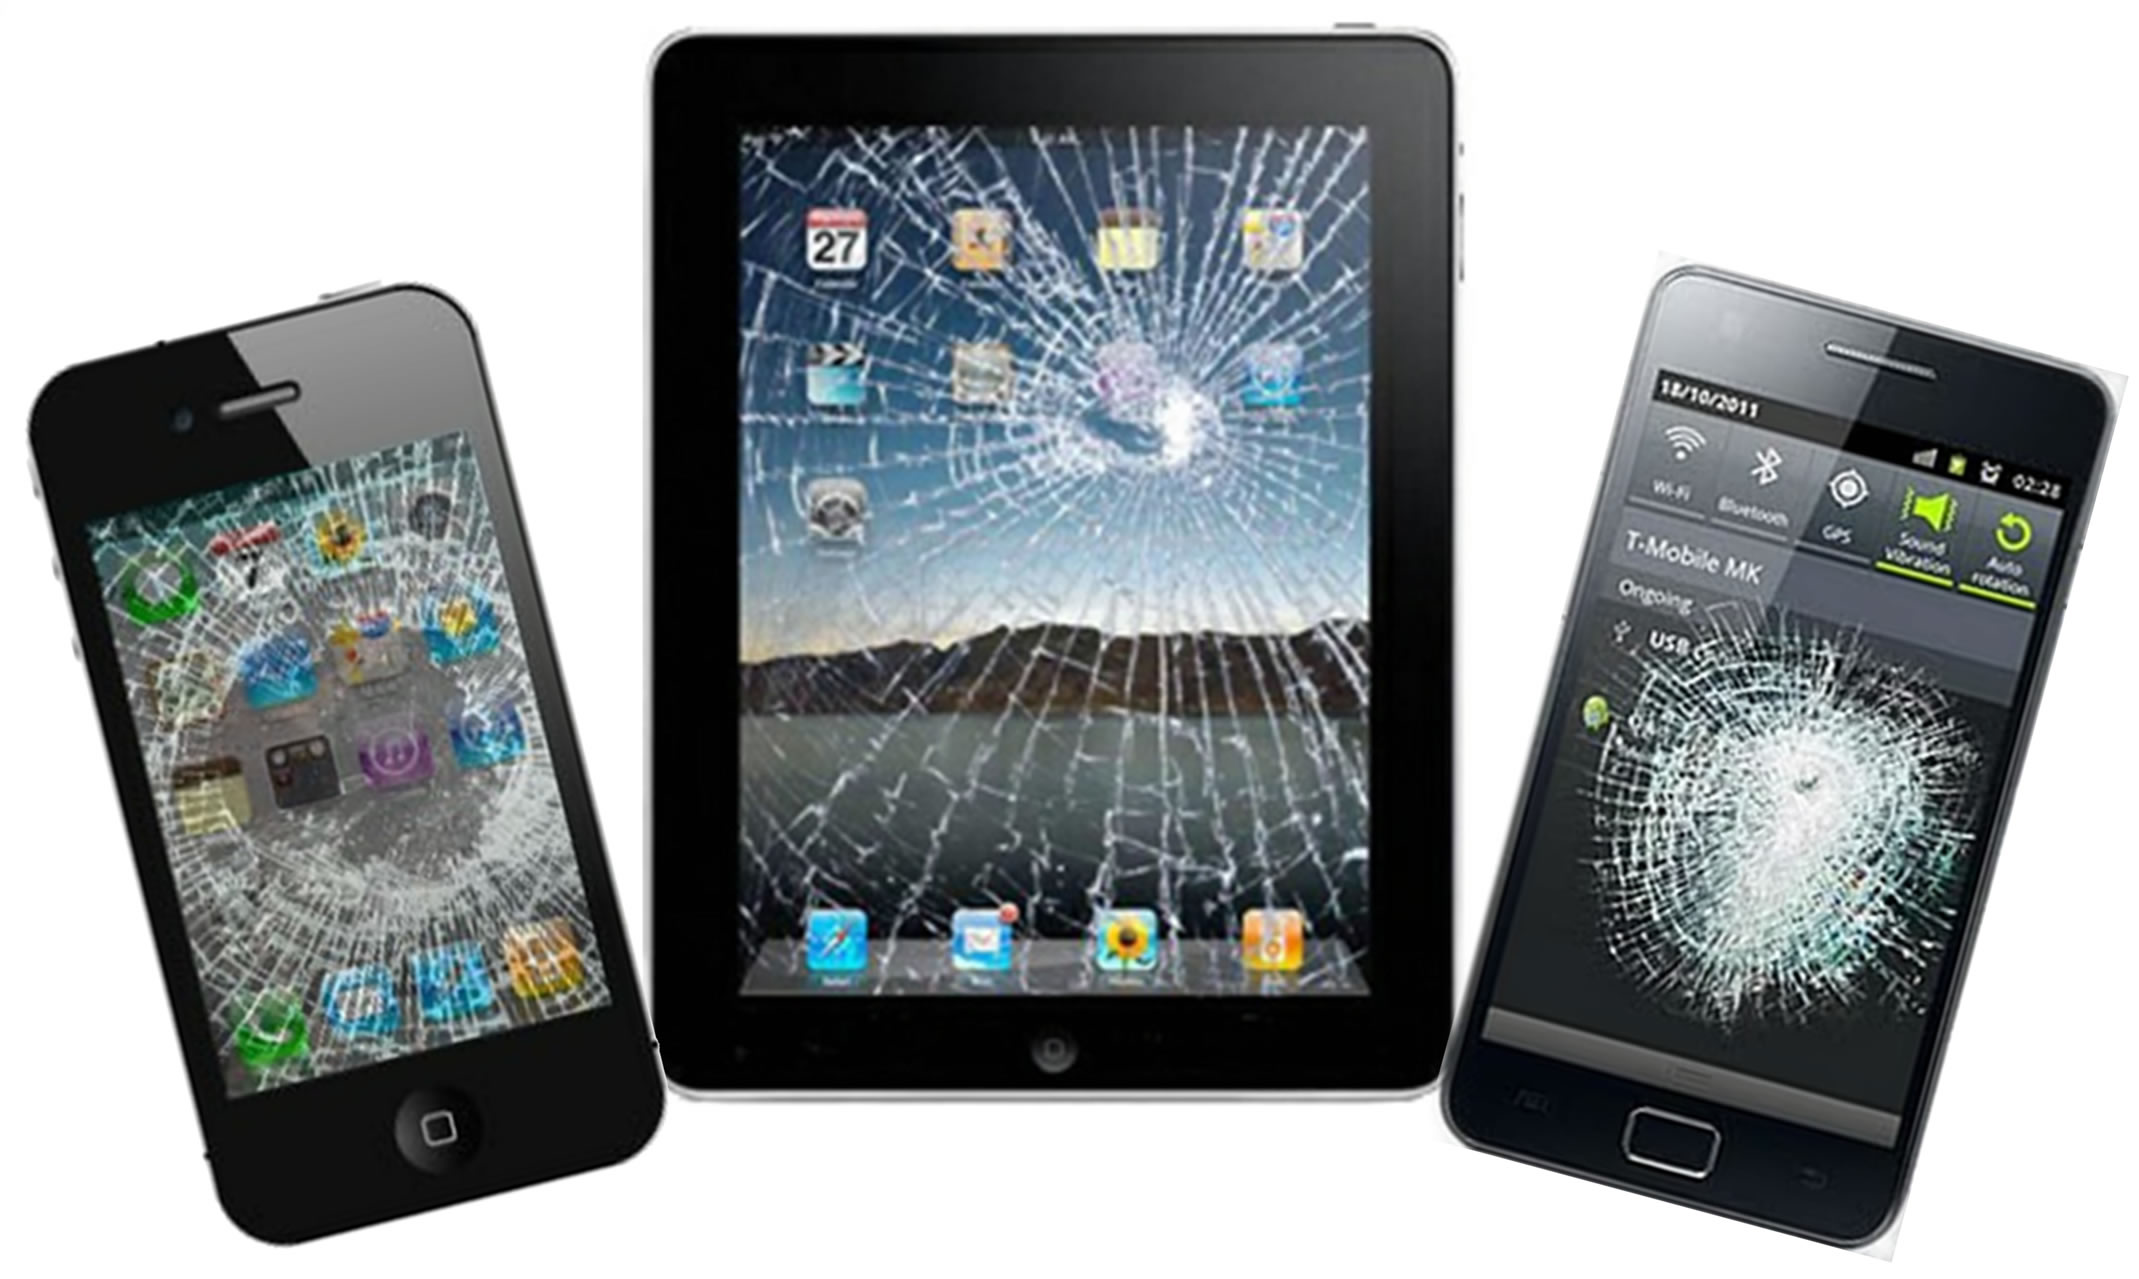 Repair - Smart Phone Broken Glass and Battery Repair - Tablet Repair ...